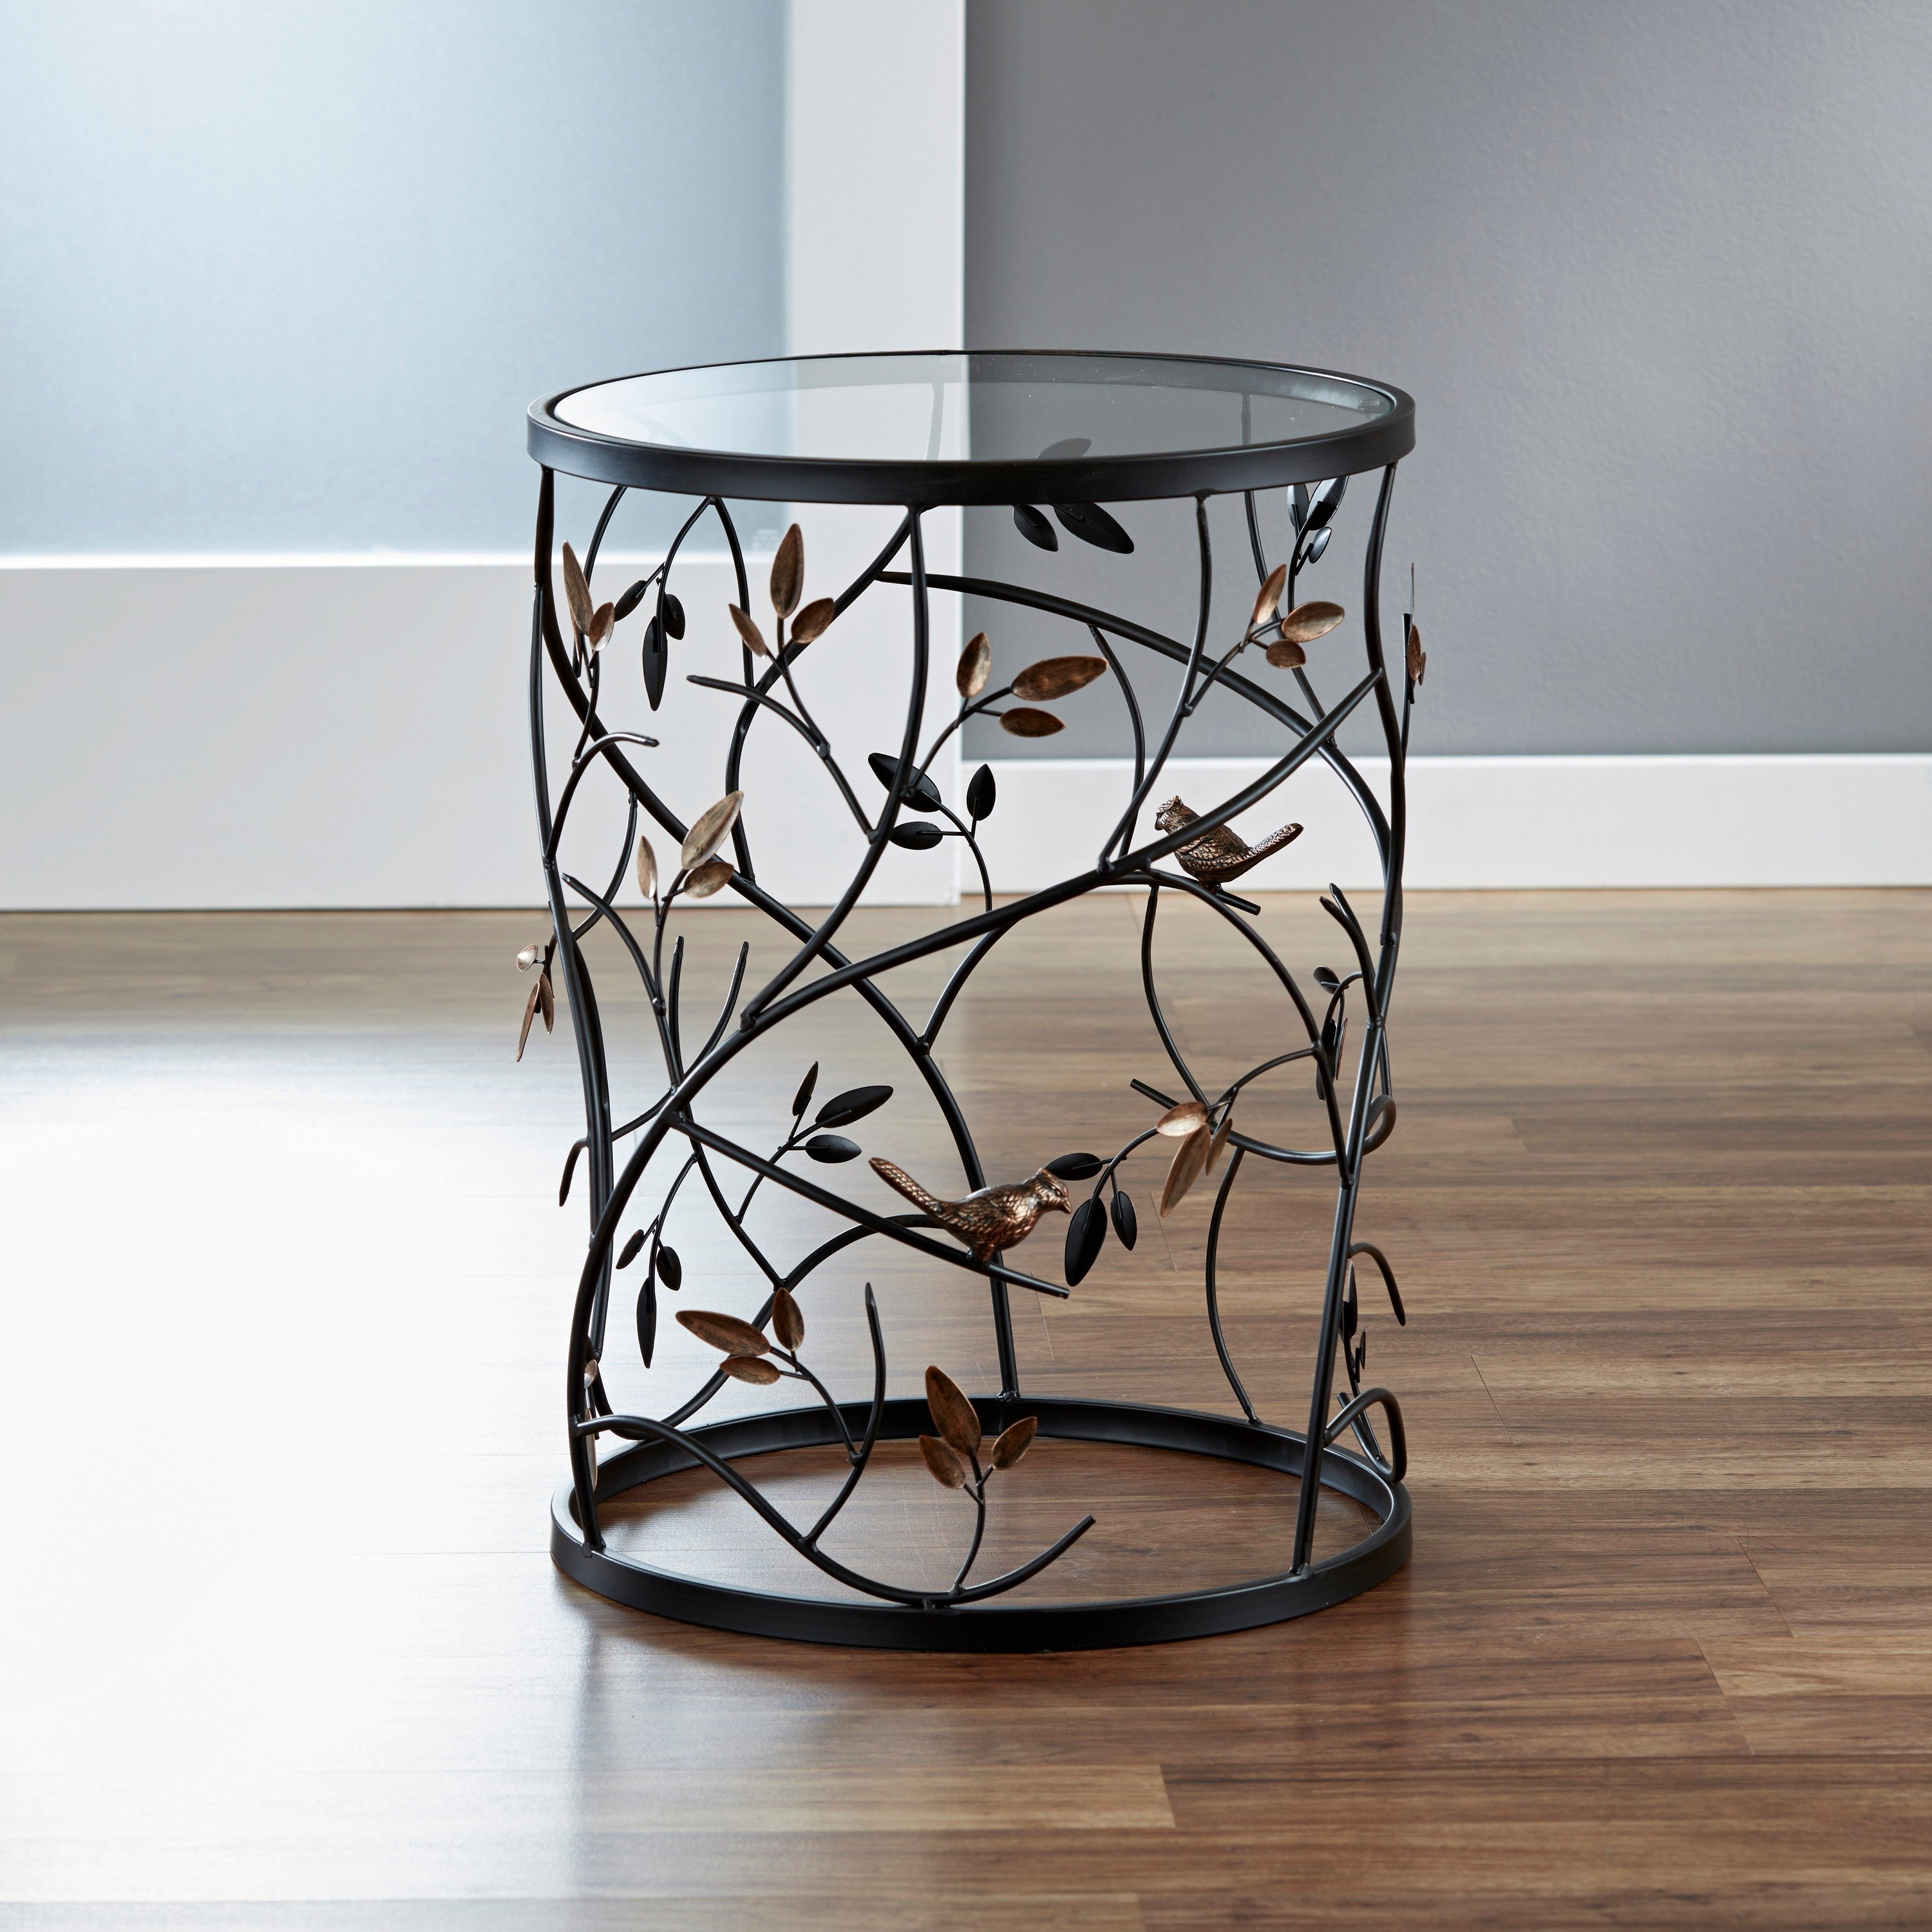 large leaves metal barrel end table free shipping today accent between two chairs chest for bedroom wooden floor lamp industrial drop leaf with folding unfinished wood dresser